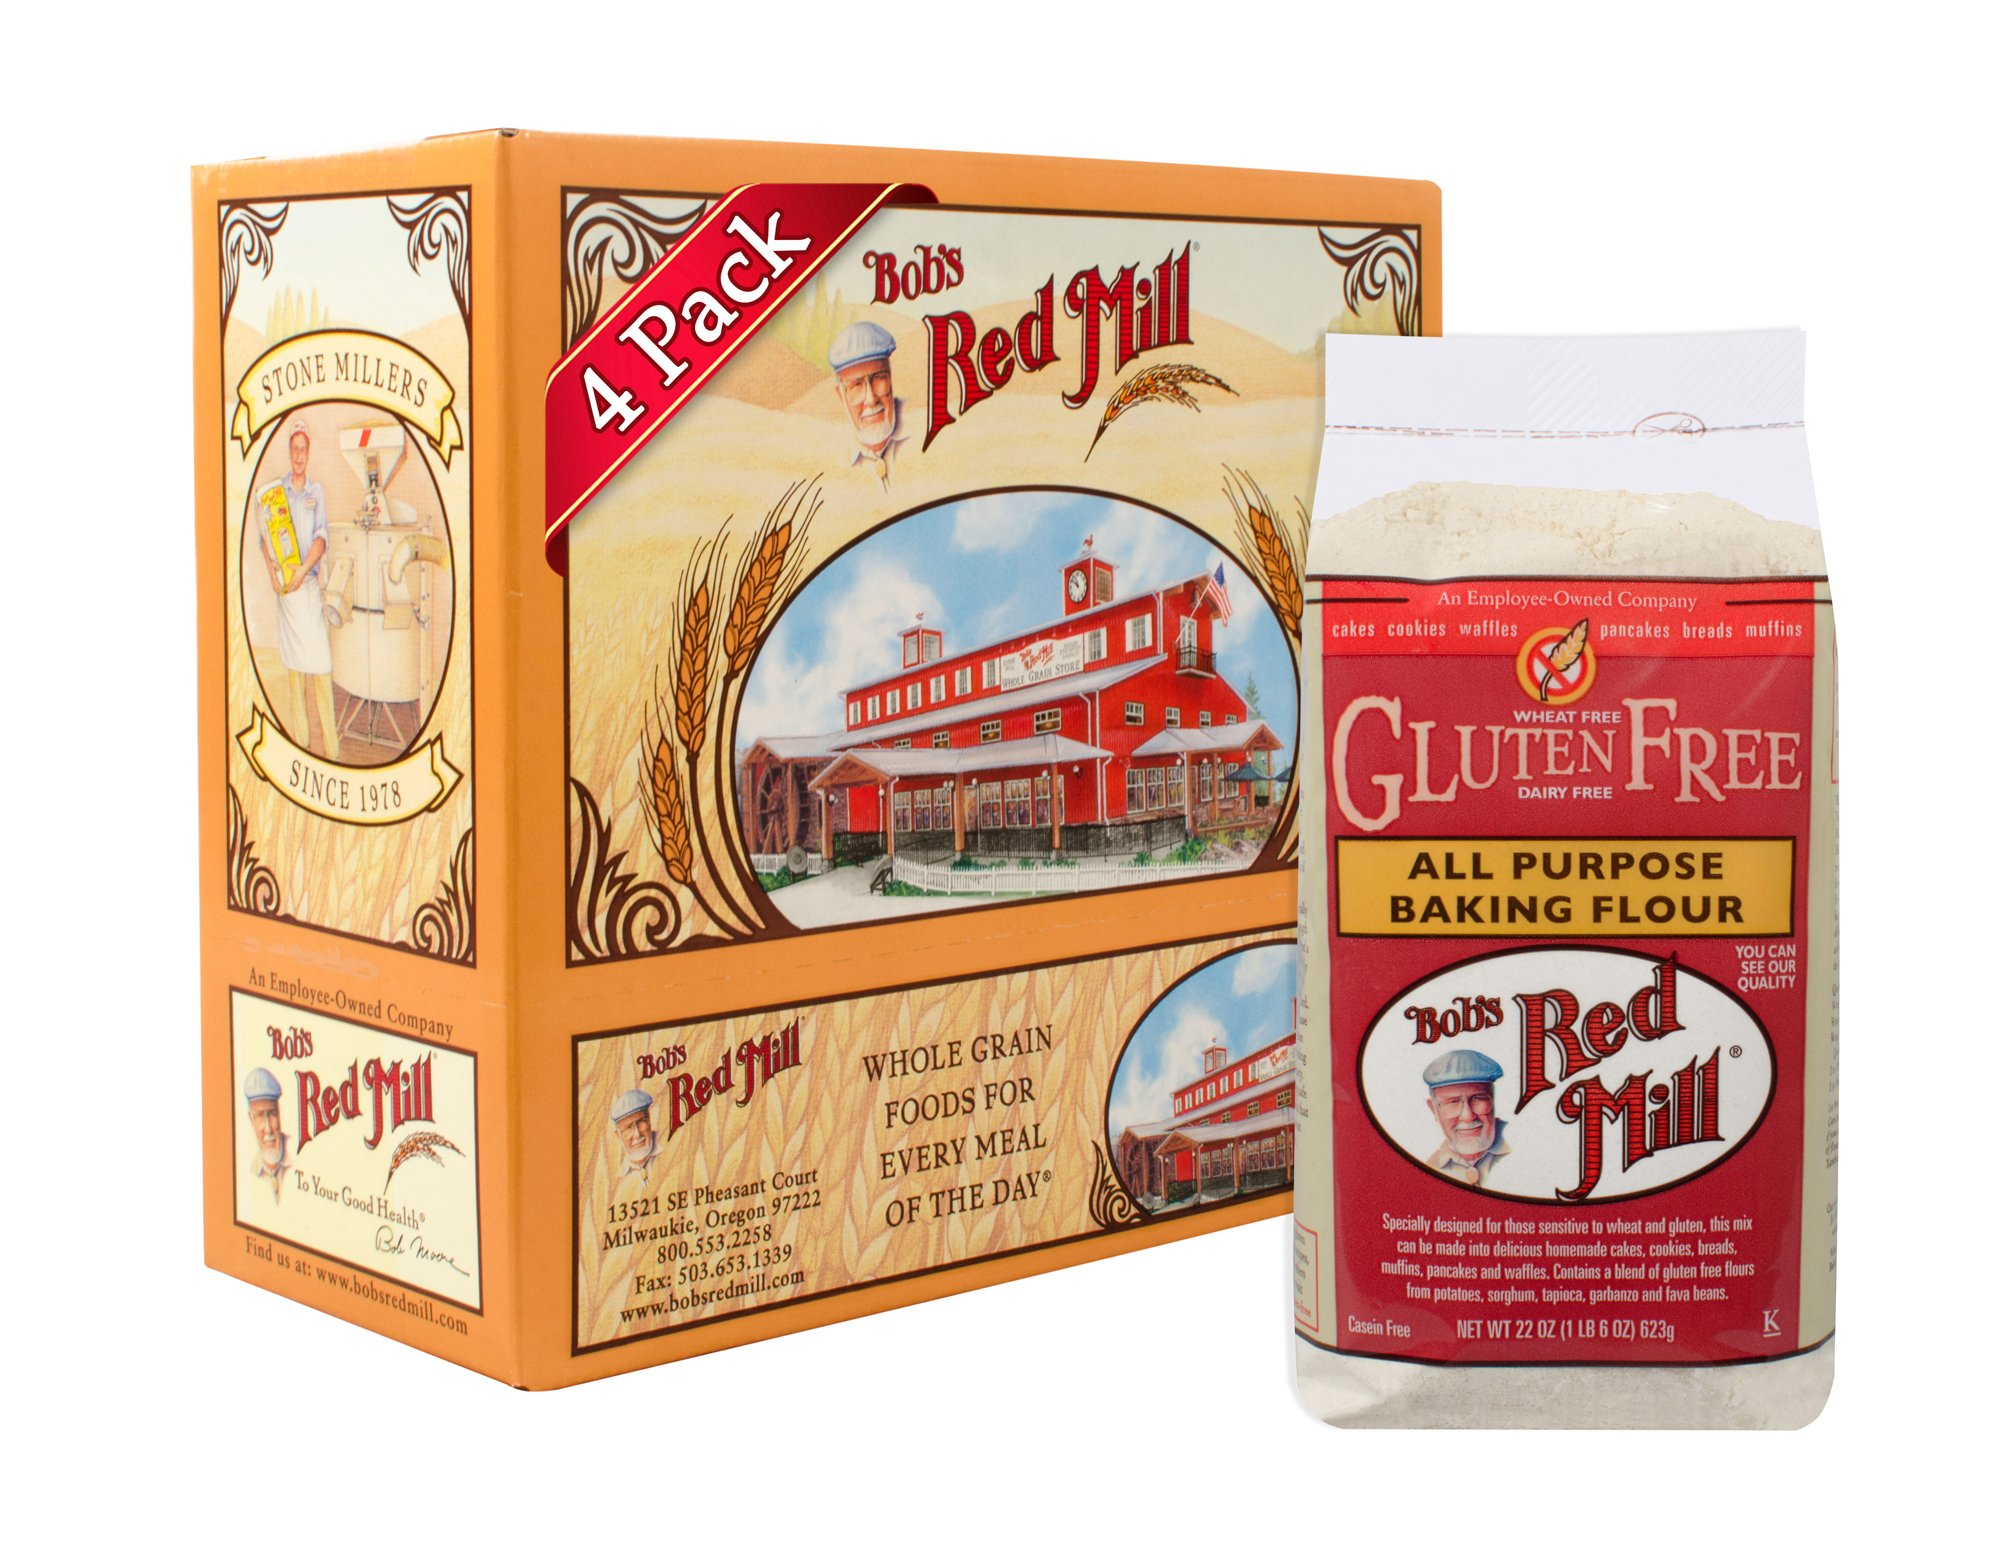 Bob's Red Mill Gluten Free All Purpose Baking Flour, 22 Oz (4 Pack) by Bob's Red Mill